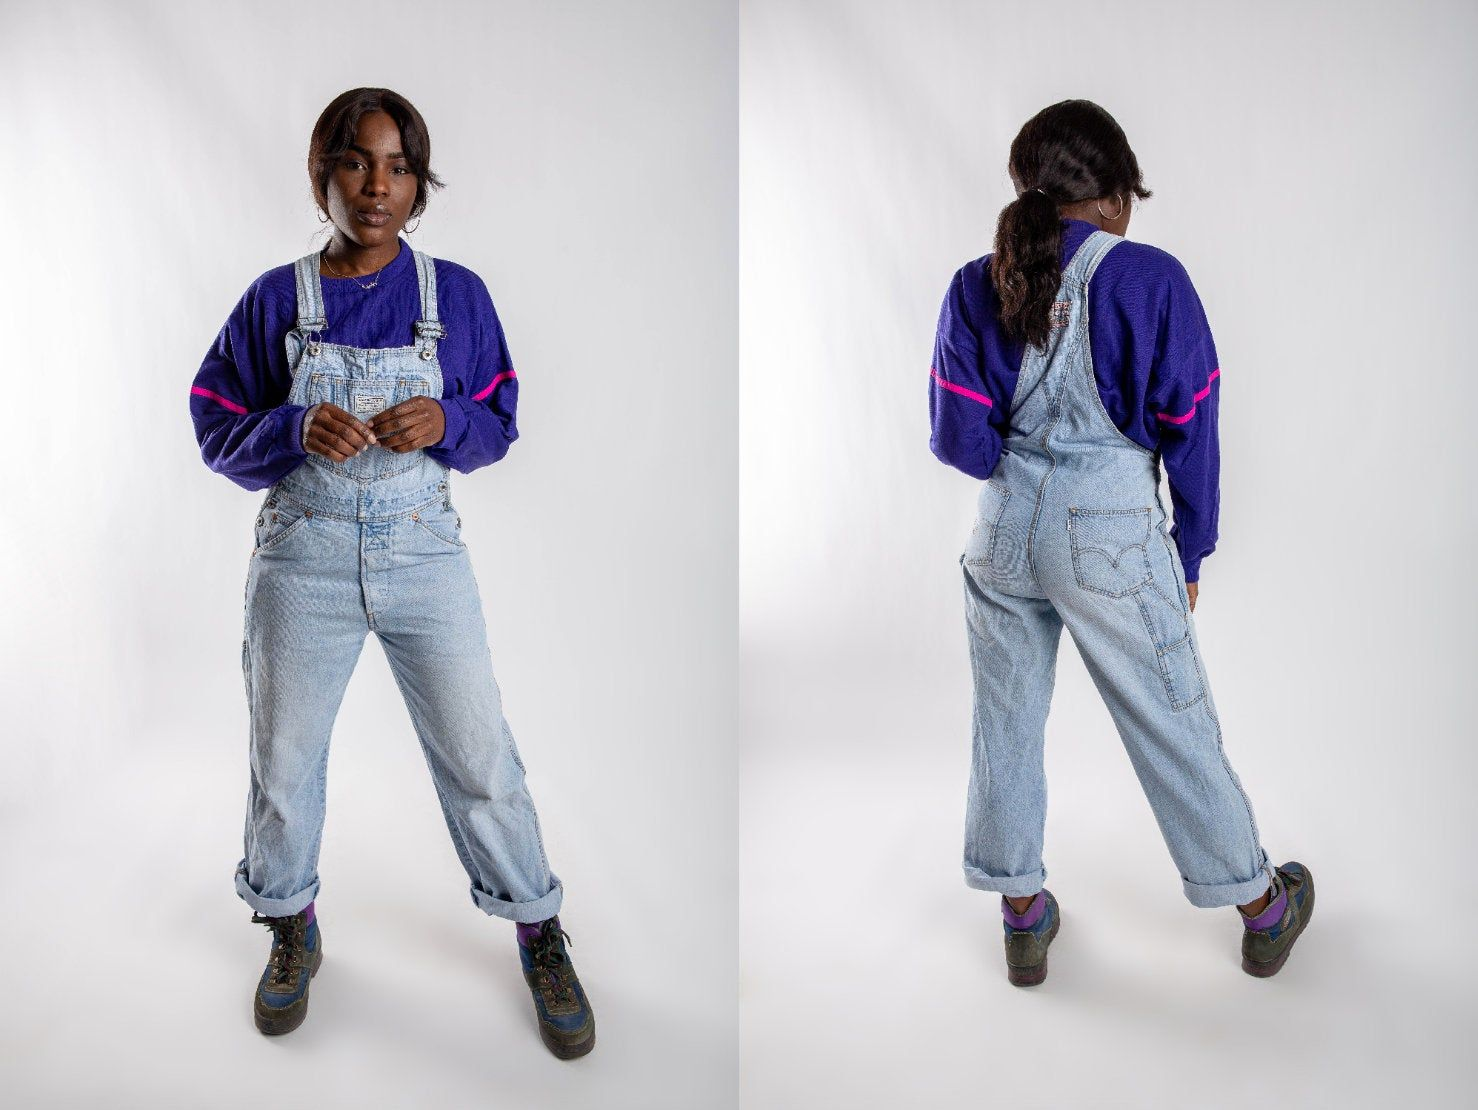 Faded Levi S Two Horse Brand Denim Dungarees 90s Etsy Denim Jacket Women Denim Dungarees Denim Women